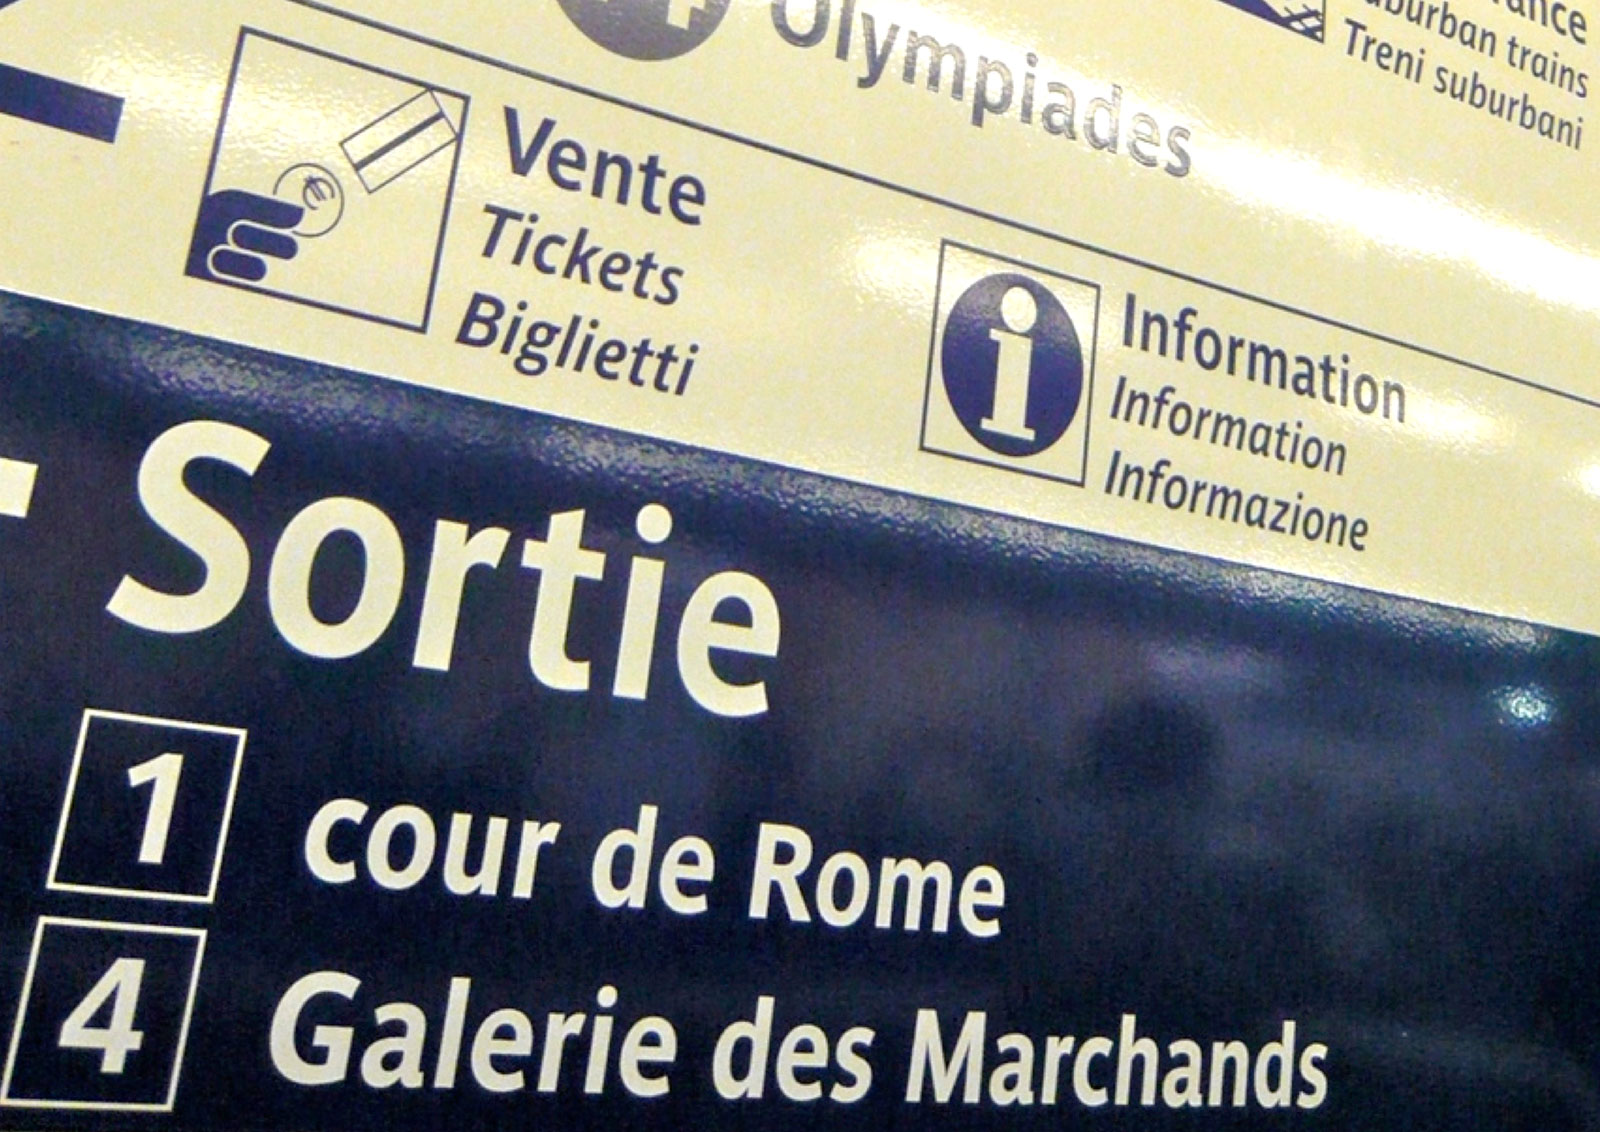 Use of Parisine for RATP signages.